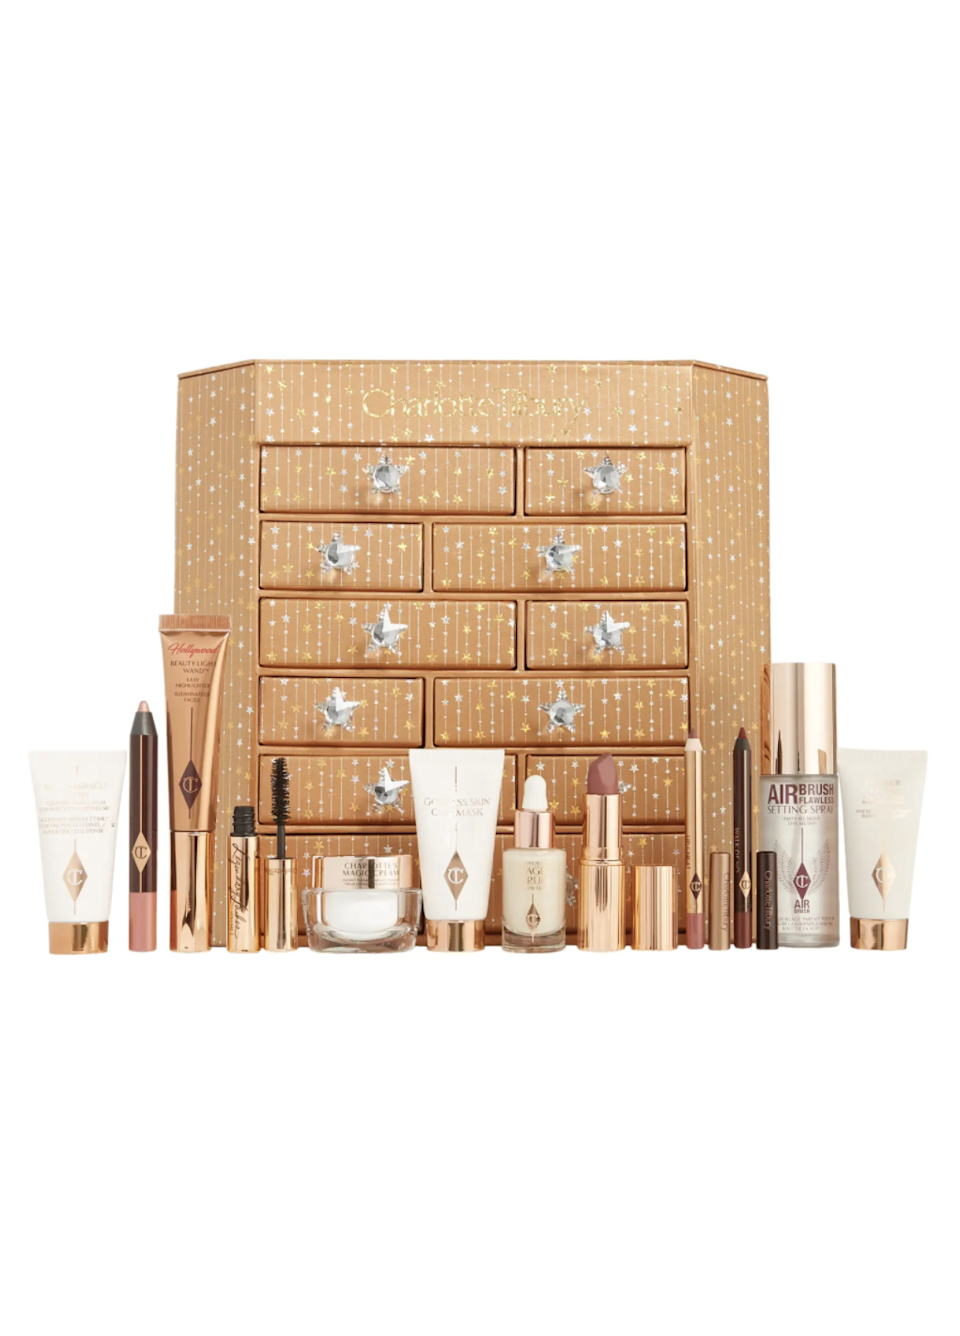 """<h2>Charlotte Tilbury Charlotte's Beauty Dreams & Secrets Advent Calendar Set</h2><br>Makeup artist Charlotte Tilbury is synonymous with glam, making this <a href=""""https://www.refinery29.com/en-us/2020/09/10056342/beauty-advent-calendars-2020"""" rel=""""nofollow noopener"""" target=""""_blank"""" data-ylk=""""slk:beauty advent calendar"""" class=""""link rapid-noclick-resp"""">beauty advent calendar</a> a wow-worthy gift. The 12 drawers conceal nine travel-size and three full-size skincare and make-up treats. <br><br><strong>Charlotte Tilbury</strong> Charlotte's Beauty Dreams & Secrets Advent Calendar Set, $, available at <a href=""""https://go.skimresources.com/?id=30283X879131&url=https%3A%2F%2Fwww.nordstrom.com%2Fs%2Fcharlotte-tilbury-charlottes-beauty-dreams-secrets-advent-calendar-set%2F6492948"""" rel=""""nofollow noopener"""" target=""""_blank"""" data-ylk=""""slk:Nordstrom"""" class=""""link rapid-noclick-resp"""">Nordstrom</a>"""